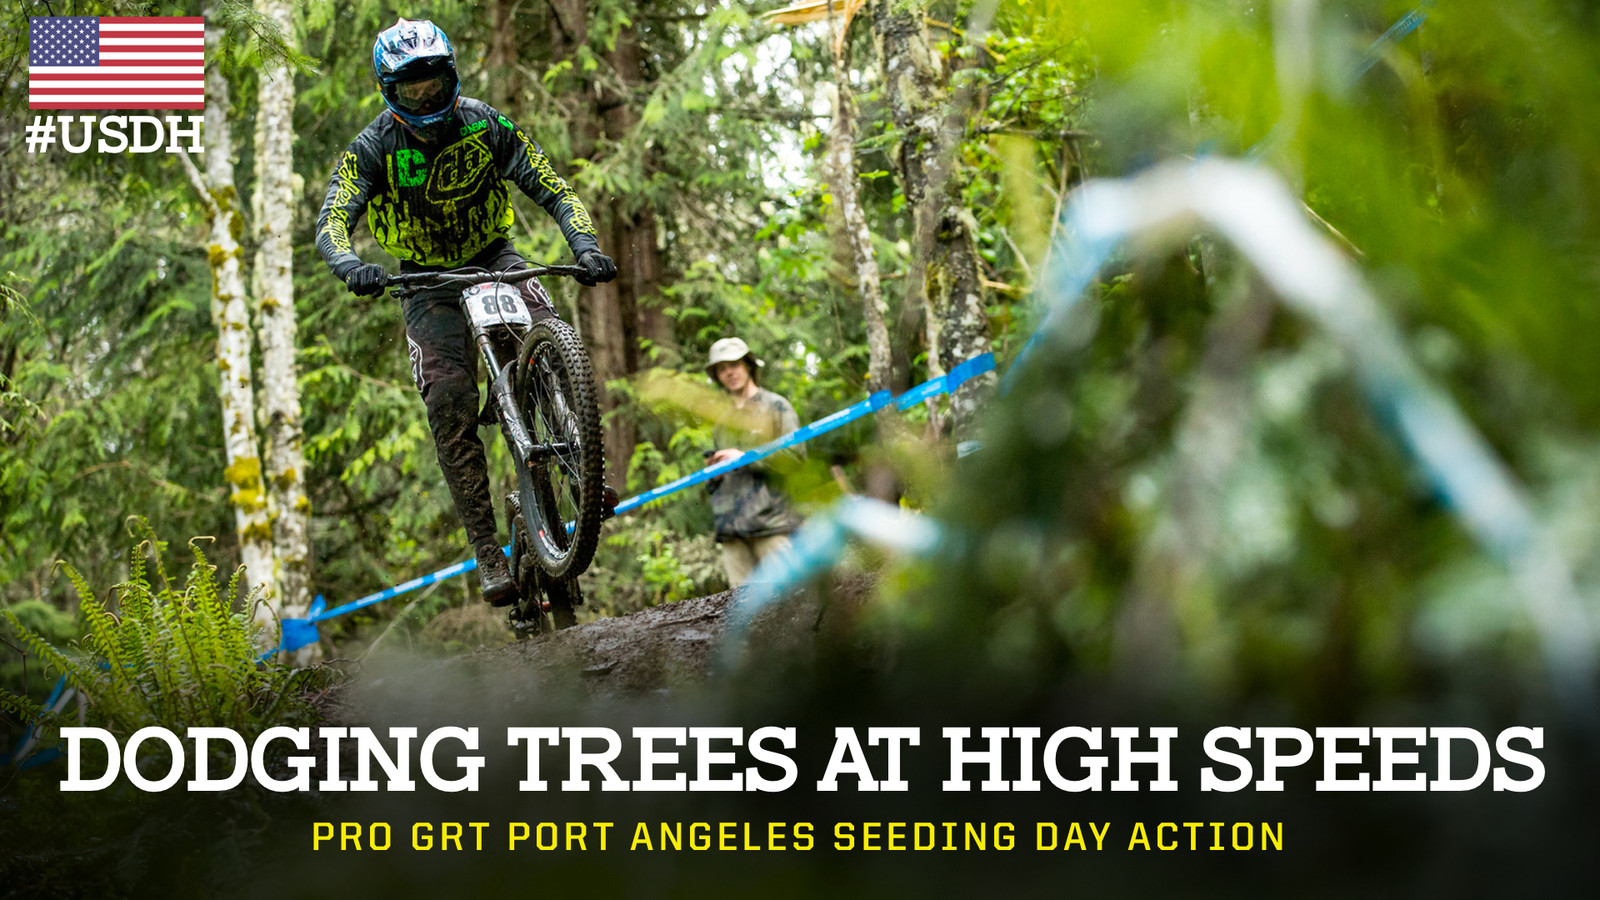 Dodging Trees at High Speeds - Port Angeles Pro GRT Seeding